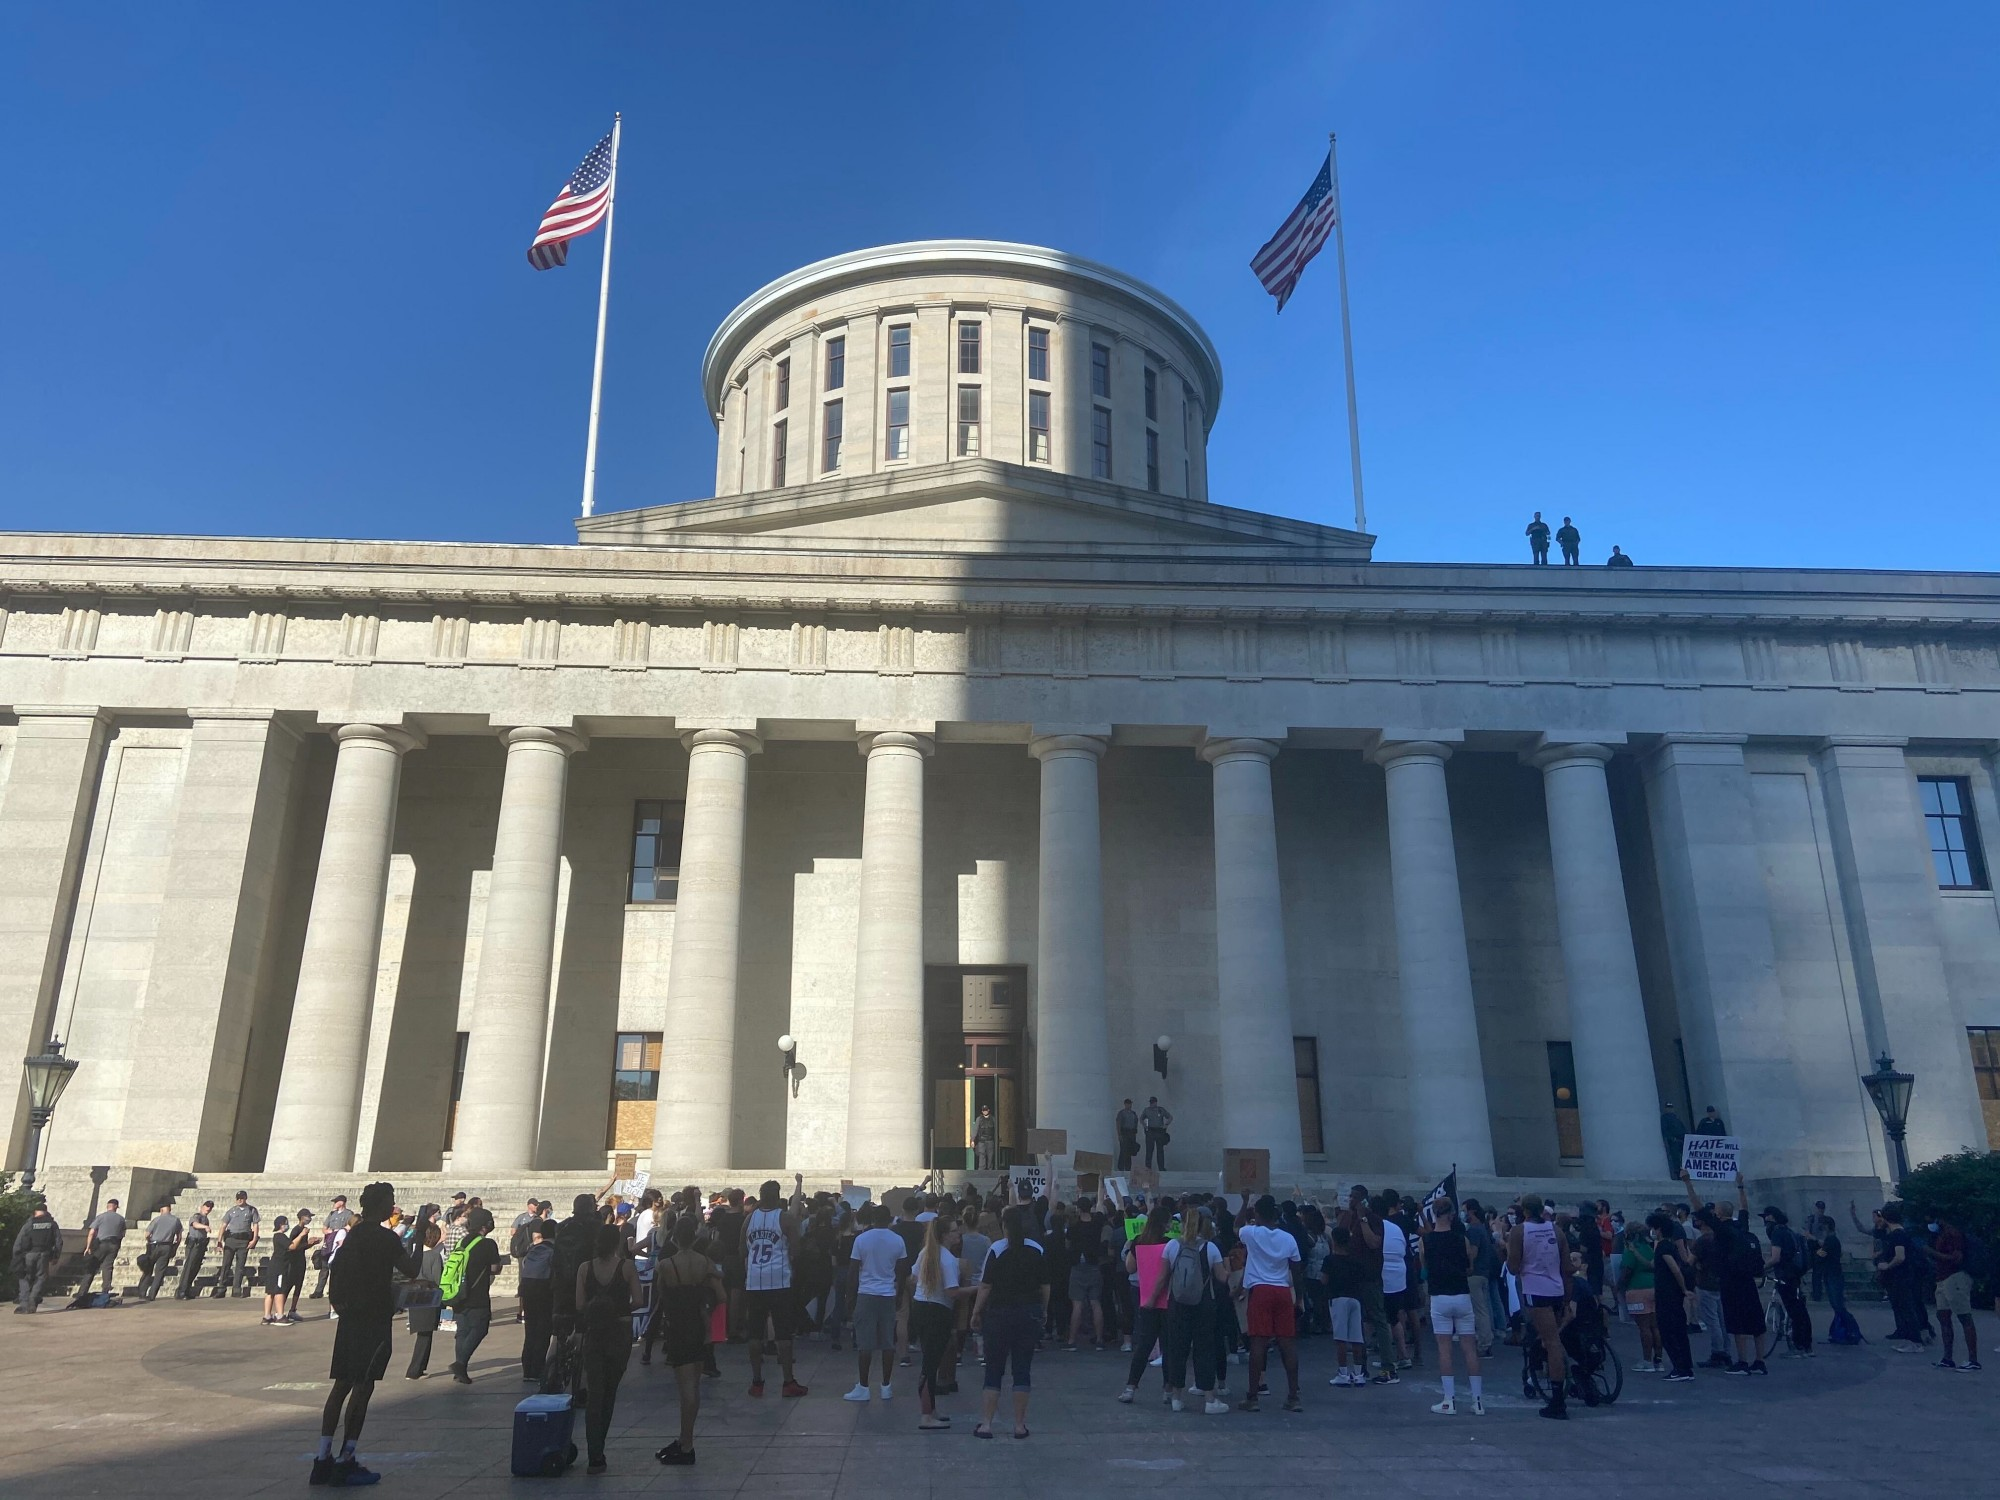 Protestors gather outside of the Ohio Statehouse.